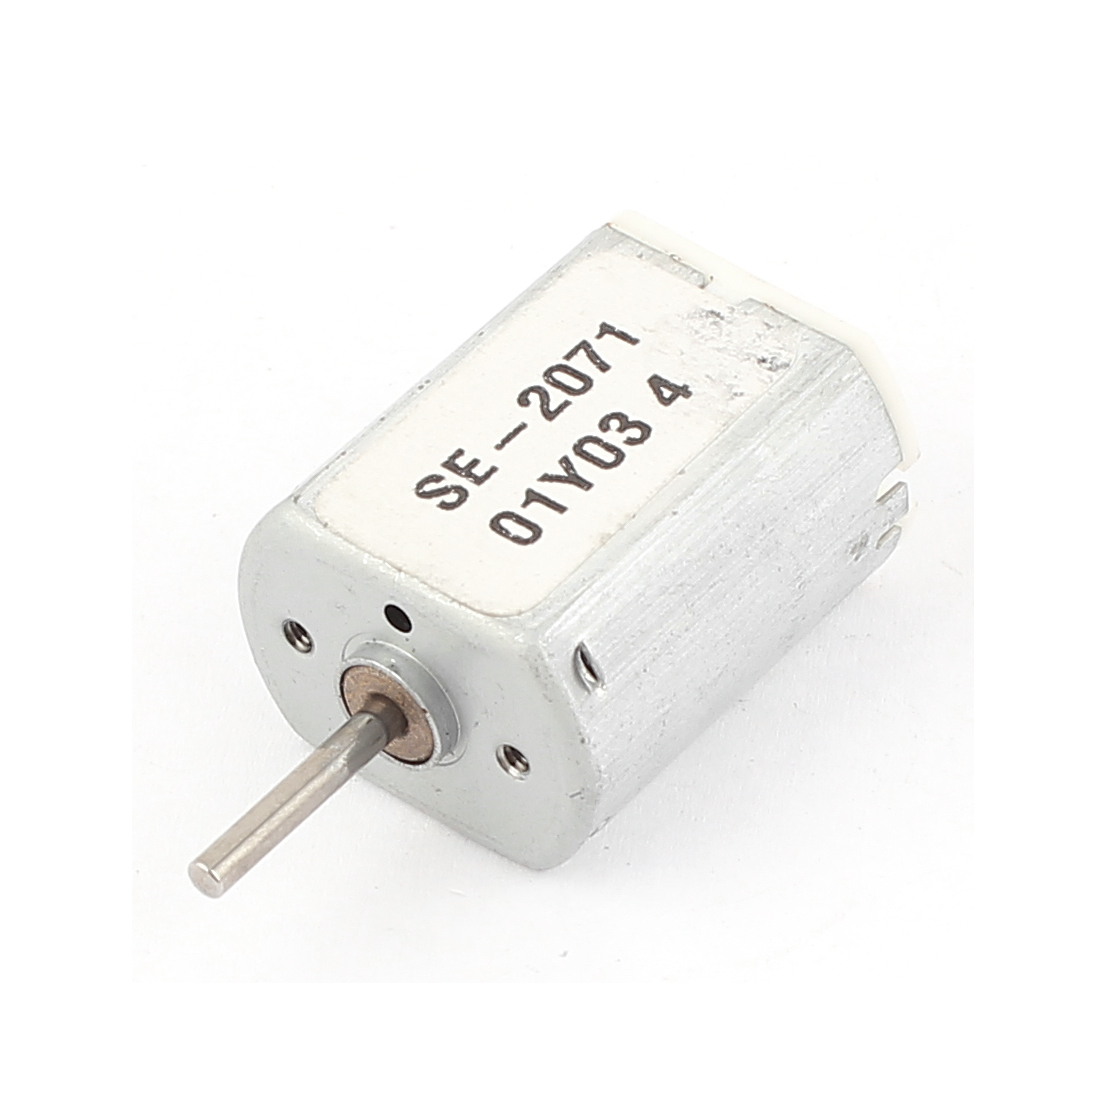 DC 1.5-4.5V 18000 RPM 2mm Shaft Dia Micro Motor for DIY Electric Toy Car Ship